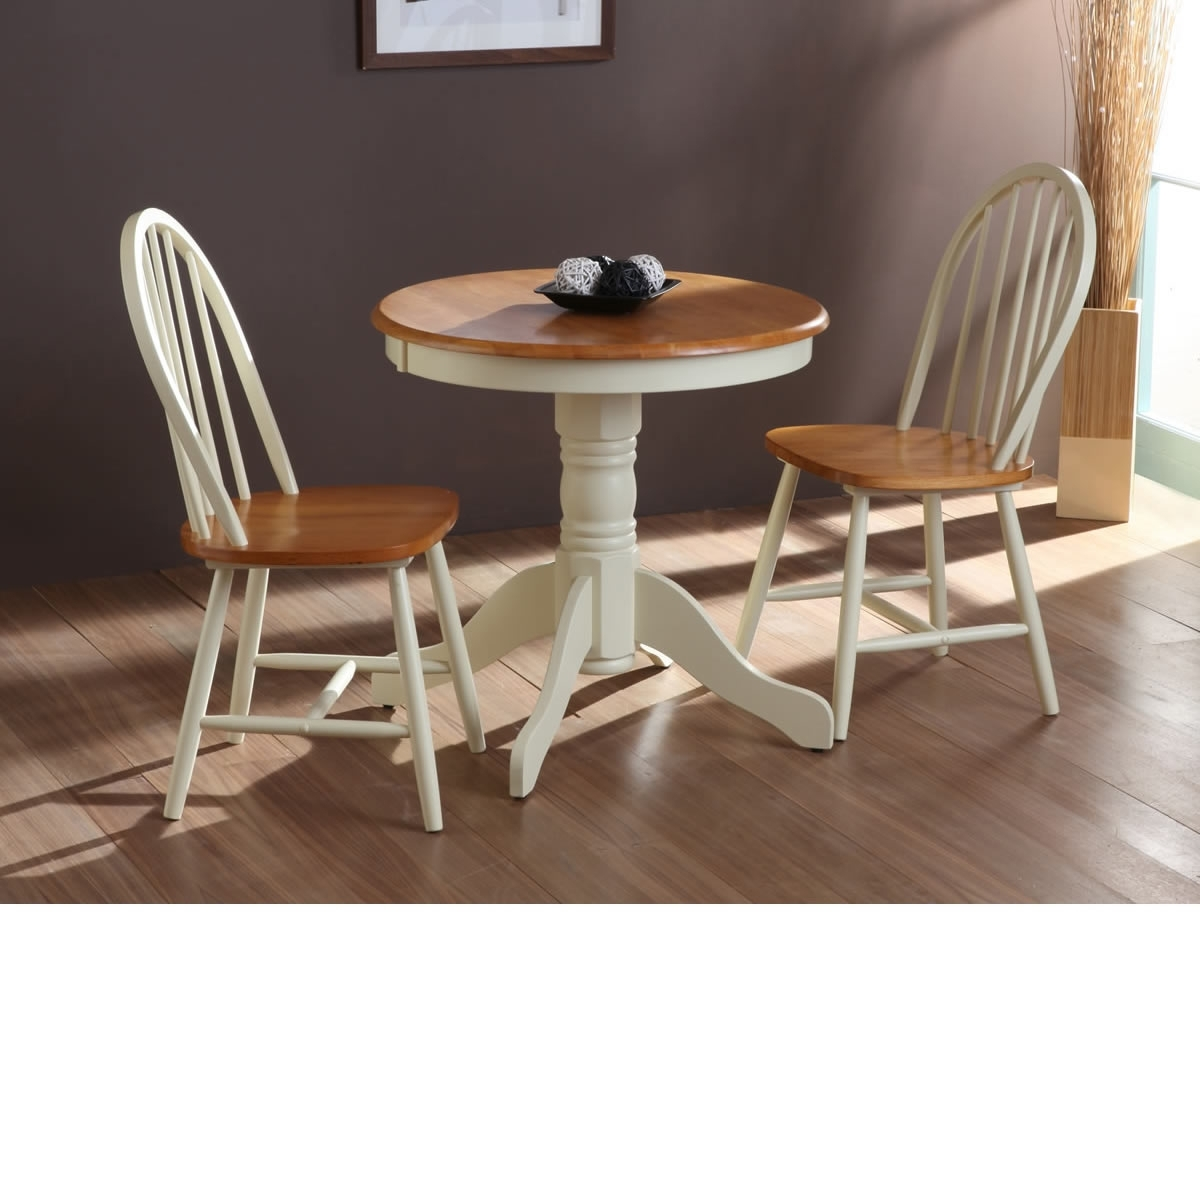 Two Seat Dining Table Ikea Round 2 Seater Dining Table 2018 White Regarding 2018 Two Seater Dining Tables (View 25 of 25)